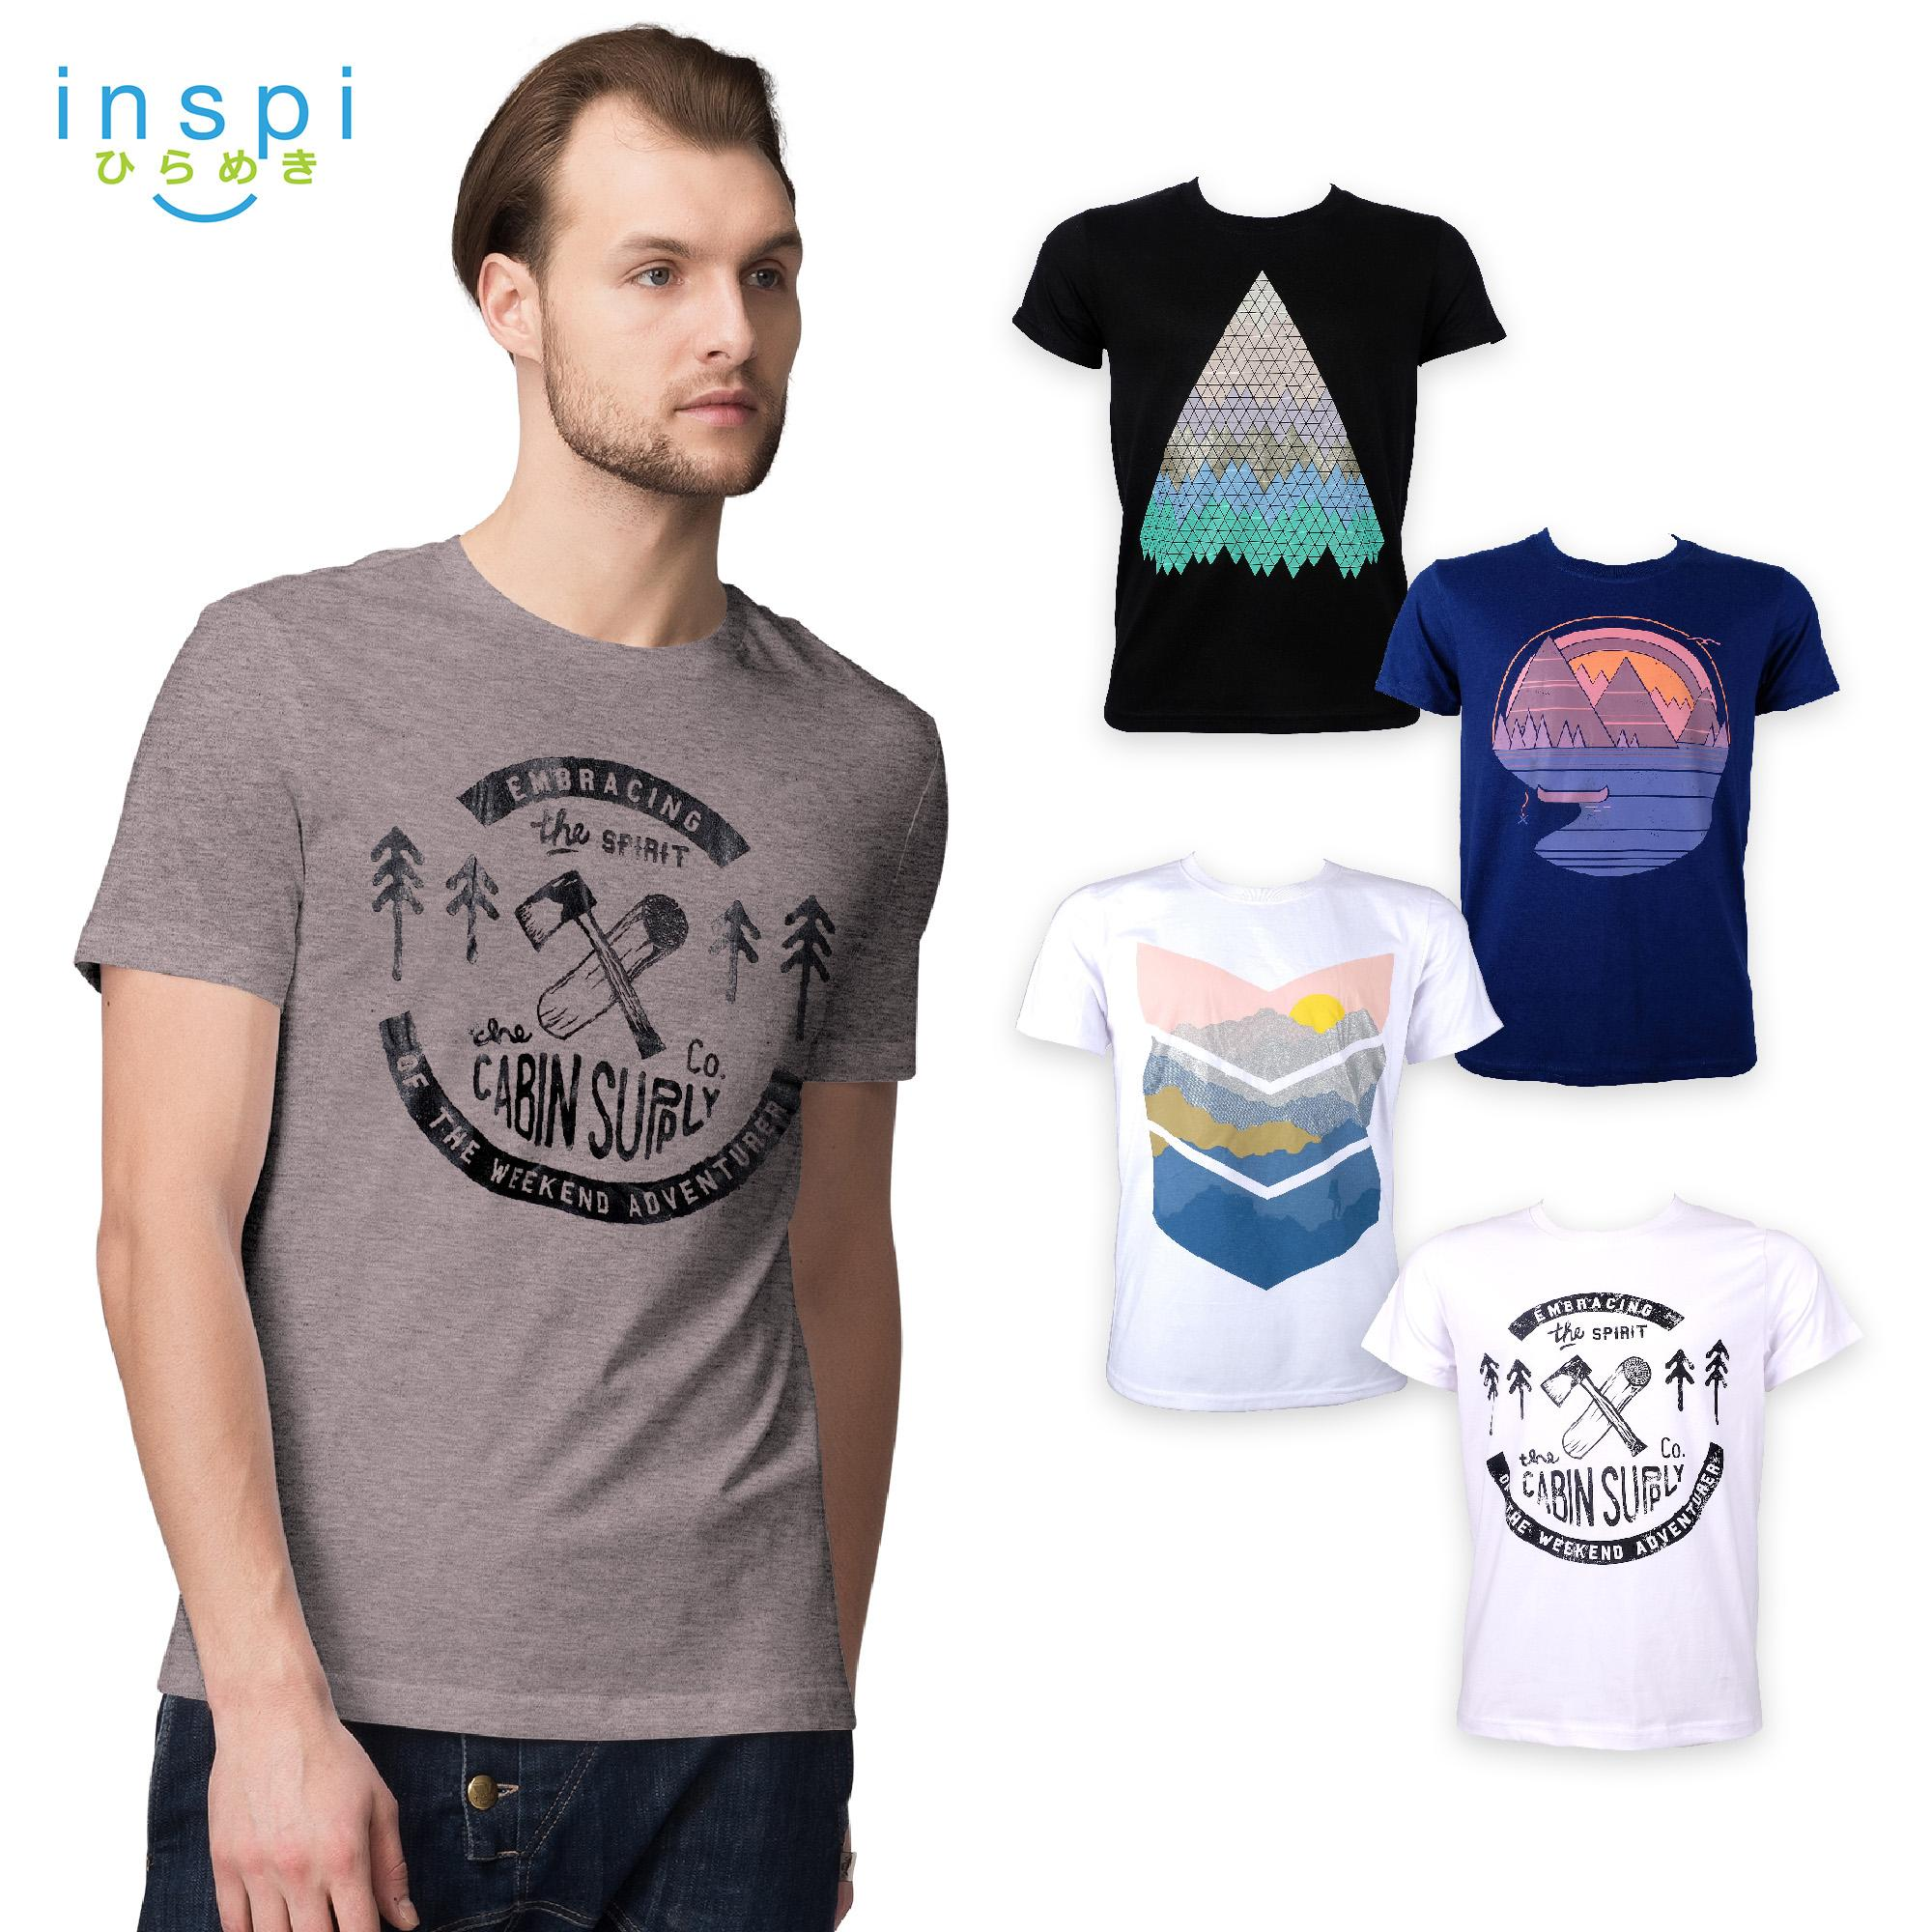 b3ed1bbe9 INSPI Tees Outdoors Collection tshirt printed graphic tee Mens t shirt  shirts for men tshirts sale